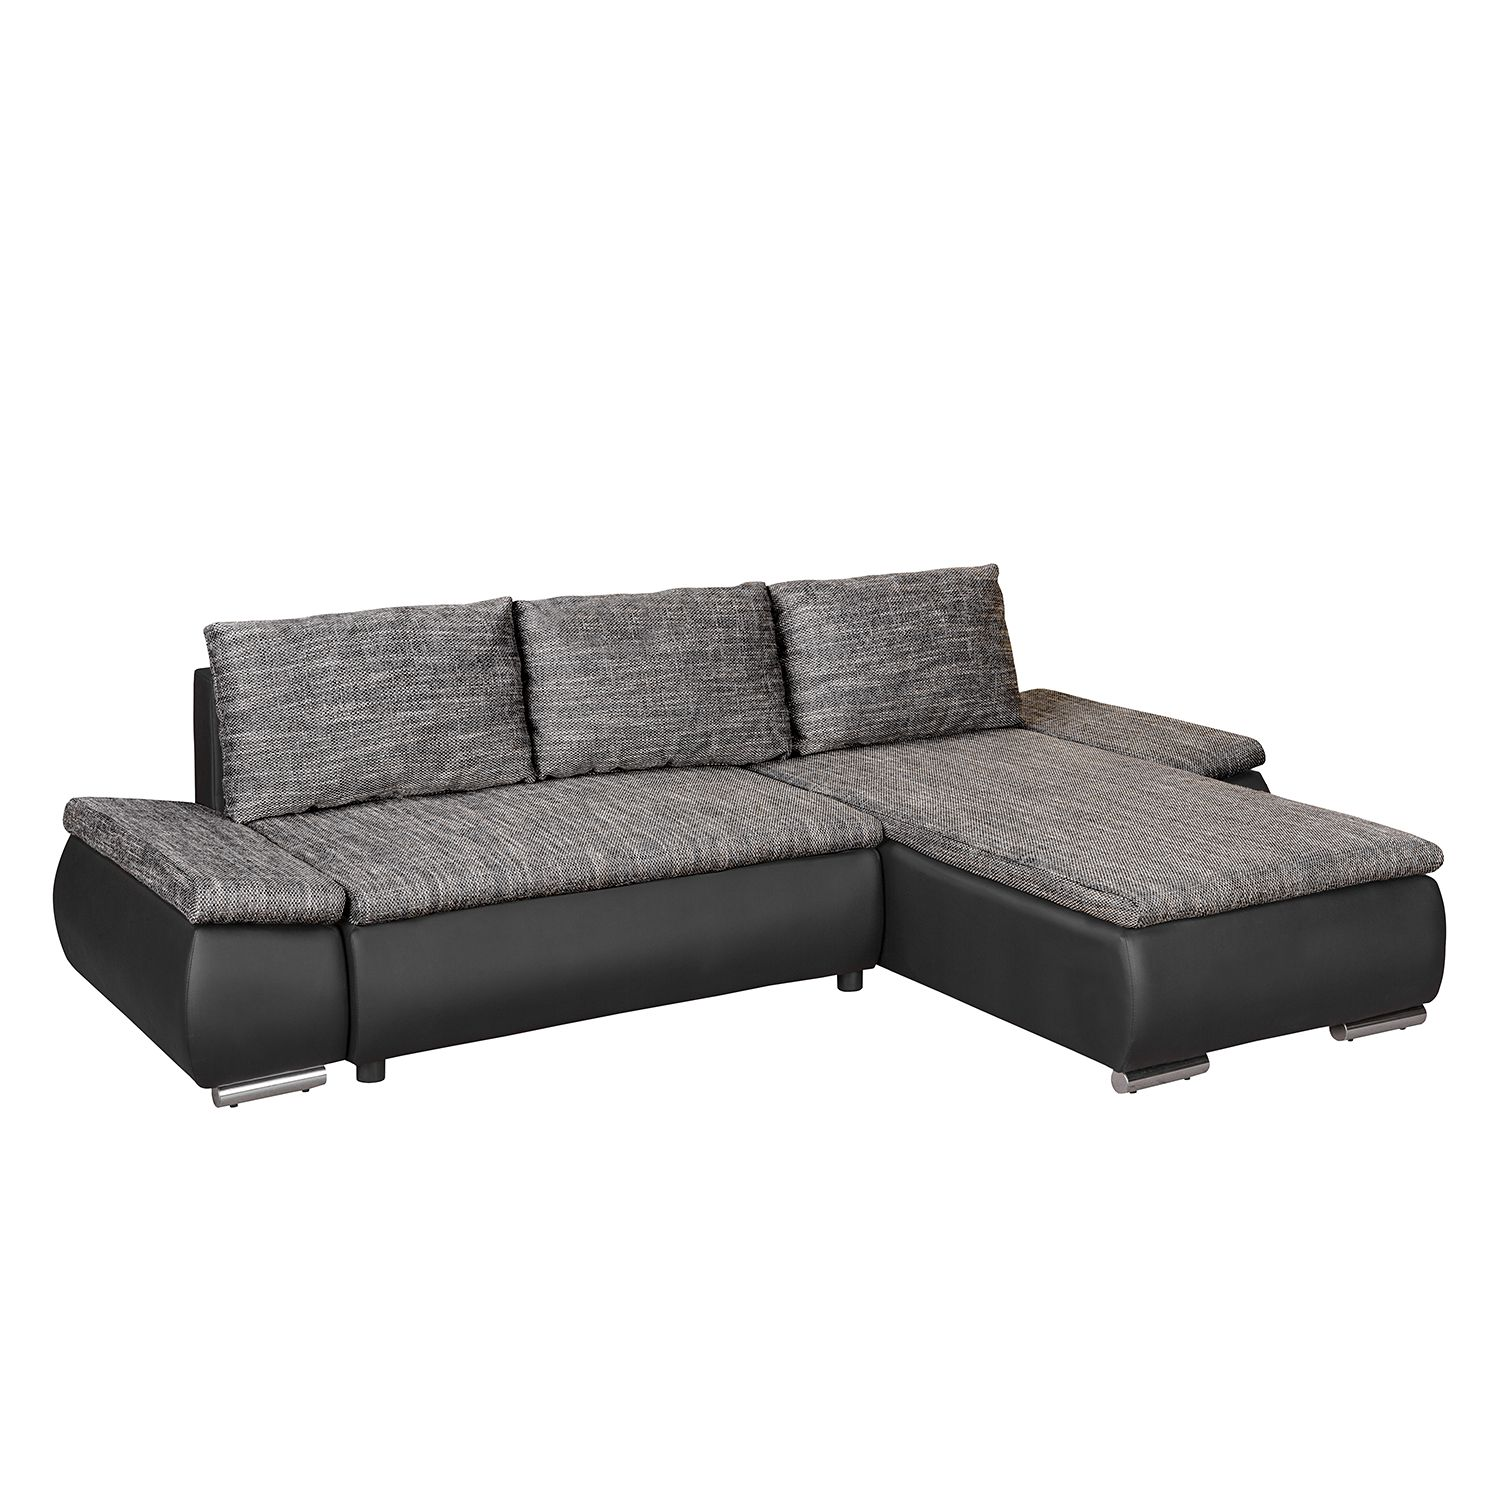 ecksofa grau alle ideen ber home design. Black Bedroom Furniture Sets. Home Design Ideas